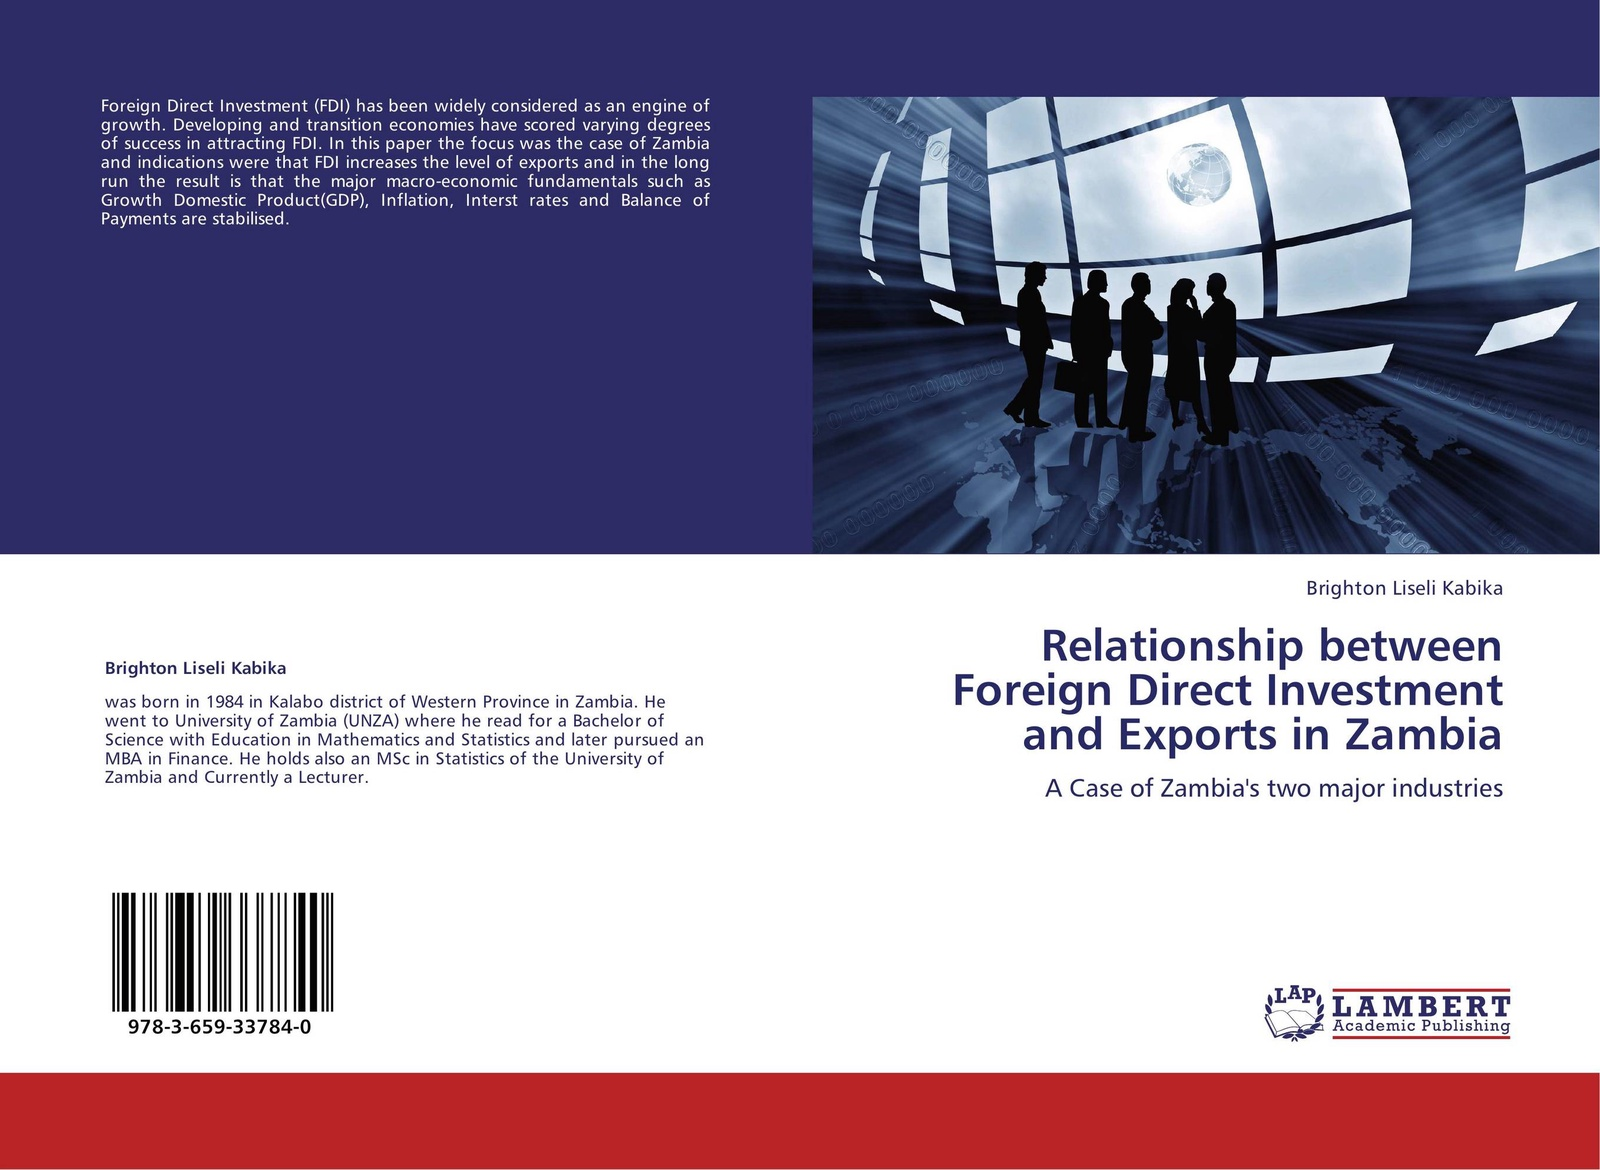 Brighton Liseli Kabika Relationship between Foreign Direct Investment and Exports in Zambia andreas epperlein foreign direct investment in ireland under consideration of the financial services sector in particular